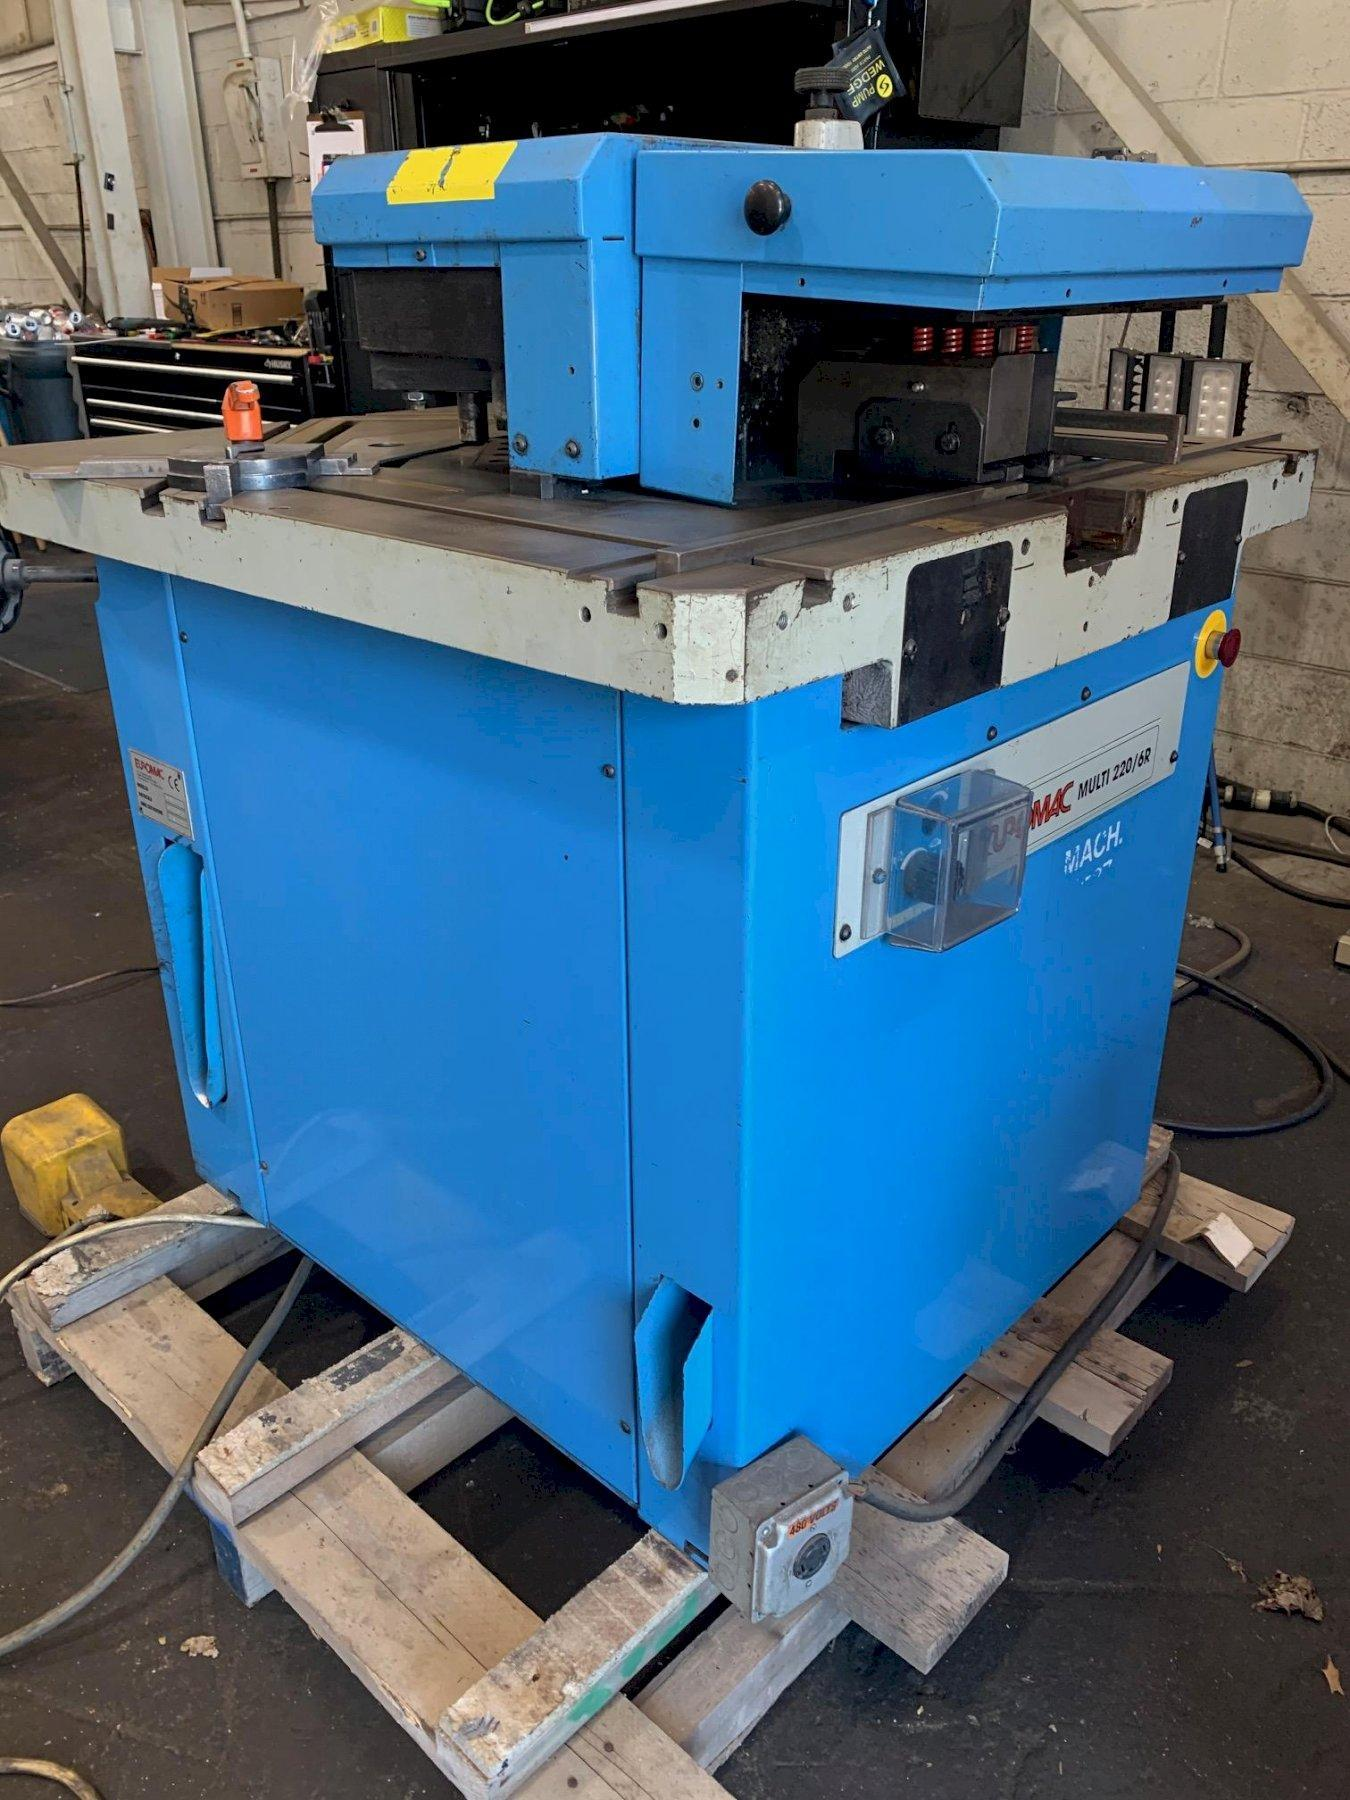 USED EUROMAC VARIABLE ANGLE NOTCHER WITH 22 TON PRESS END MODEL 200/6 MULTI, Stock # 10742, Year 1999